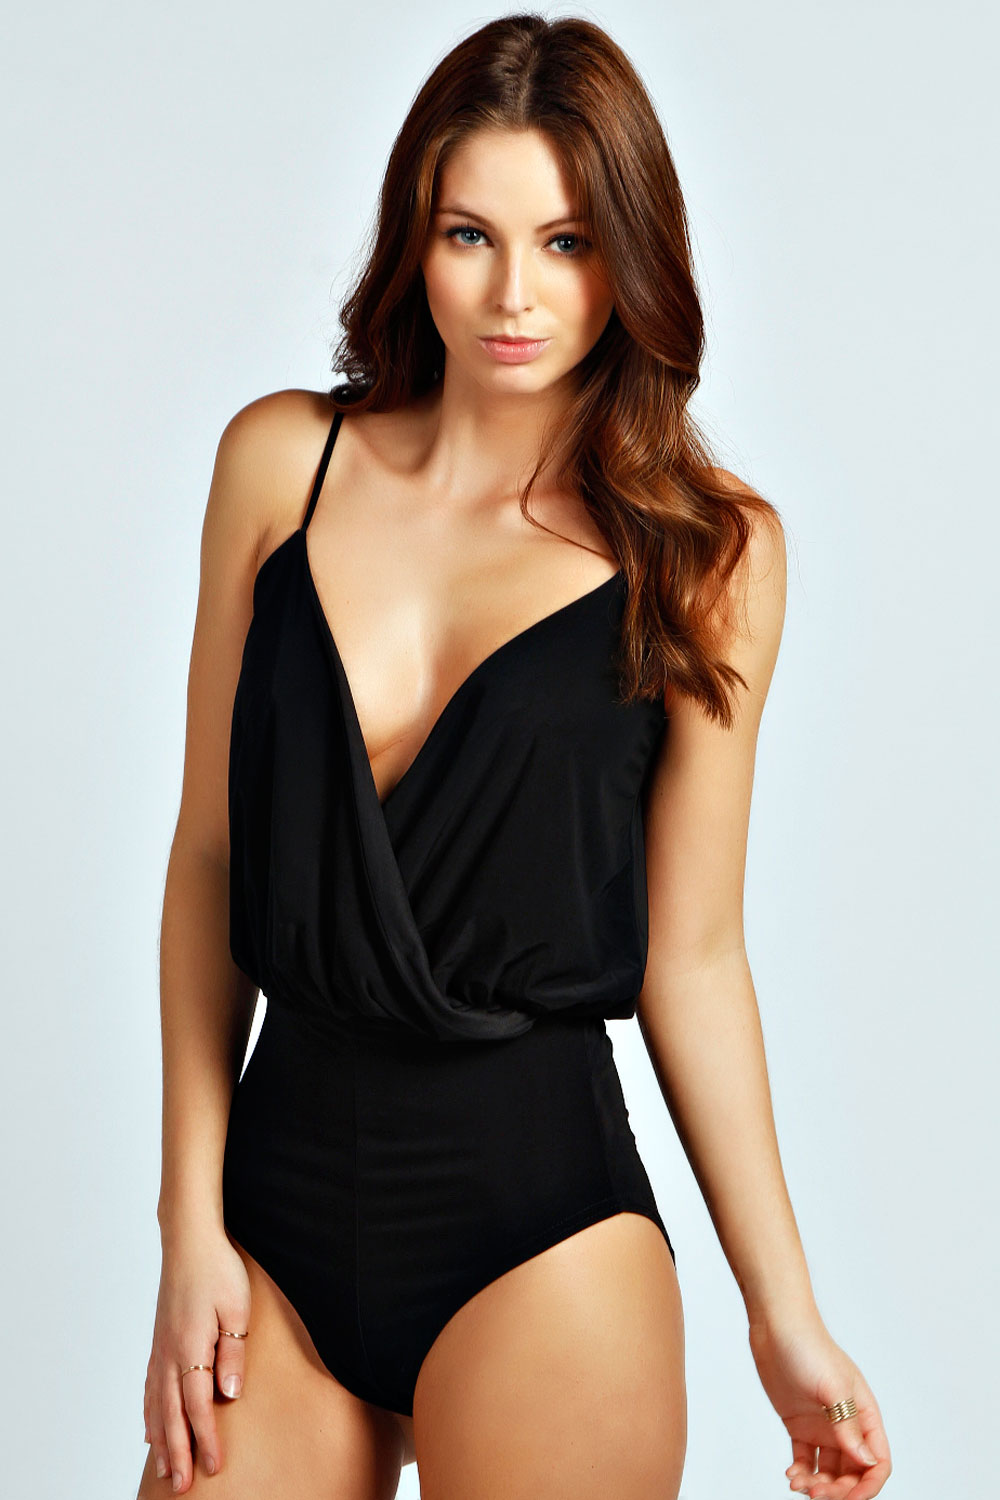 From lace bodysuits to cut out bodysuits, Make Me Chic has the trendiest bodysuits for women on sale now! Feel sexy with backless or halter bodysuit styles.